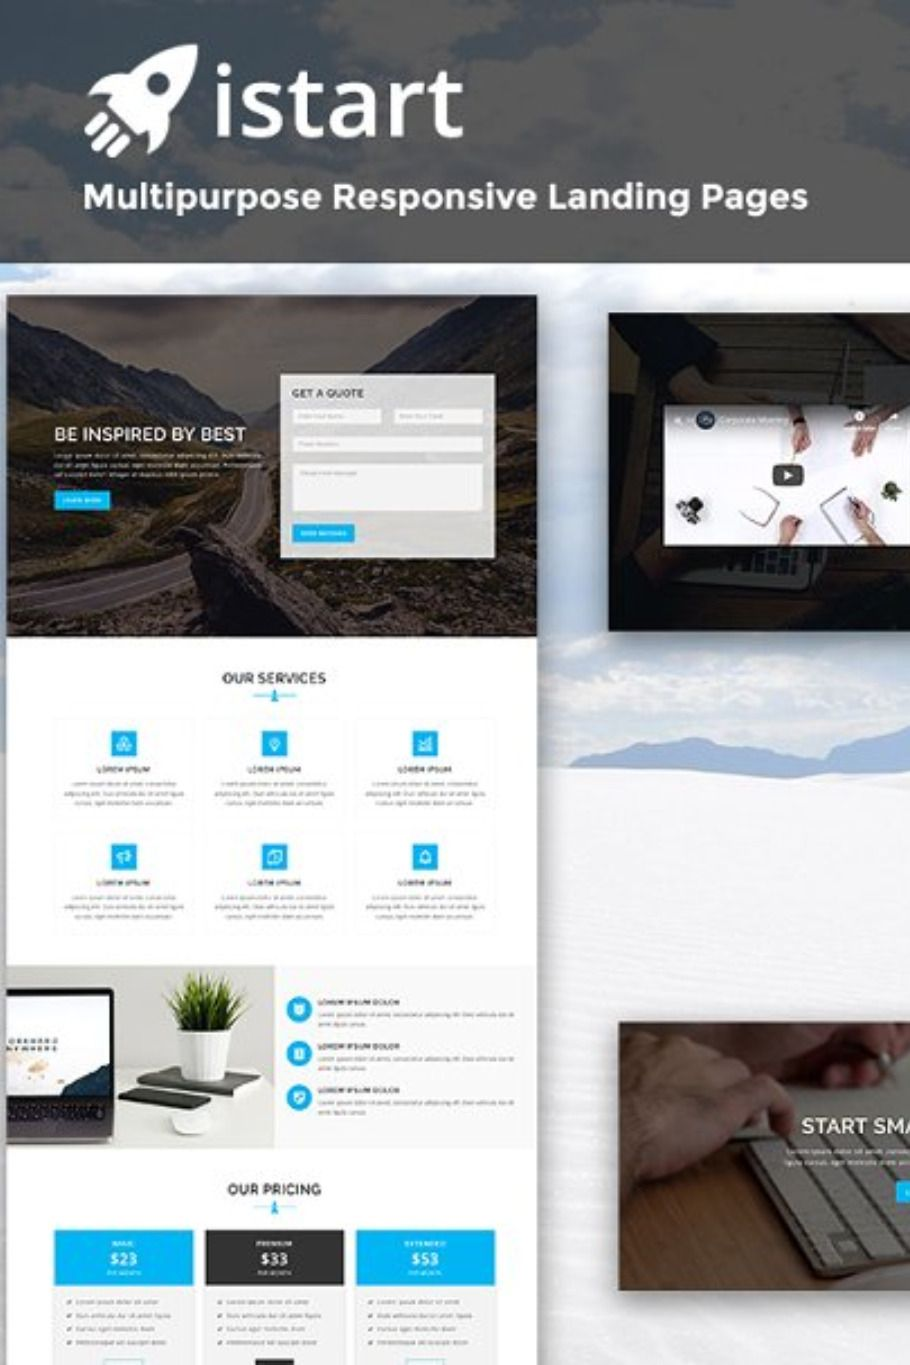 Istart Responsive Html Landing Page With Images Landing Page